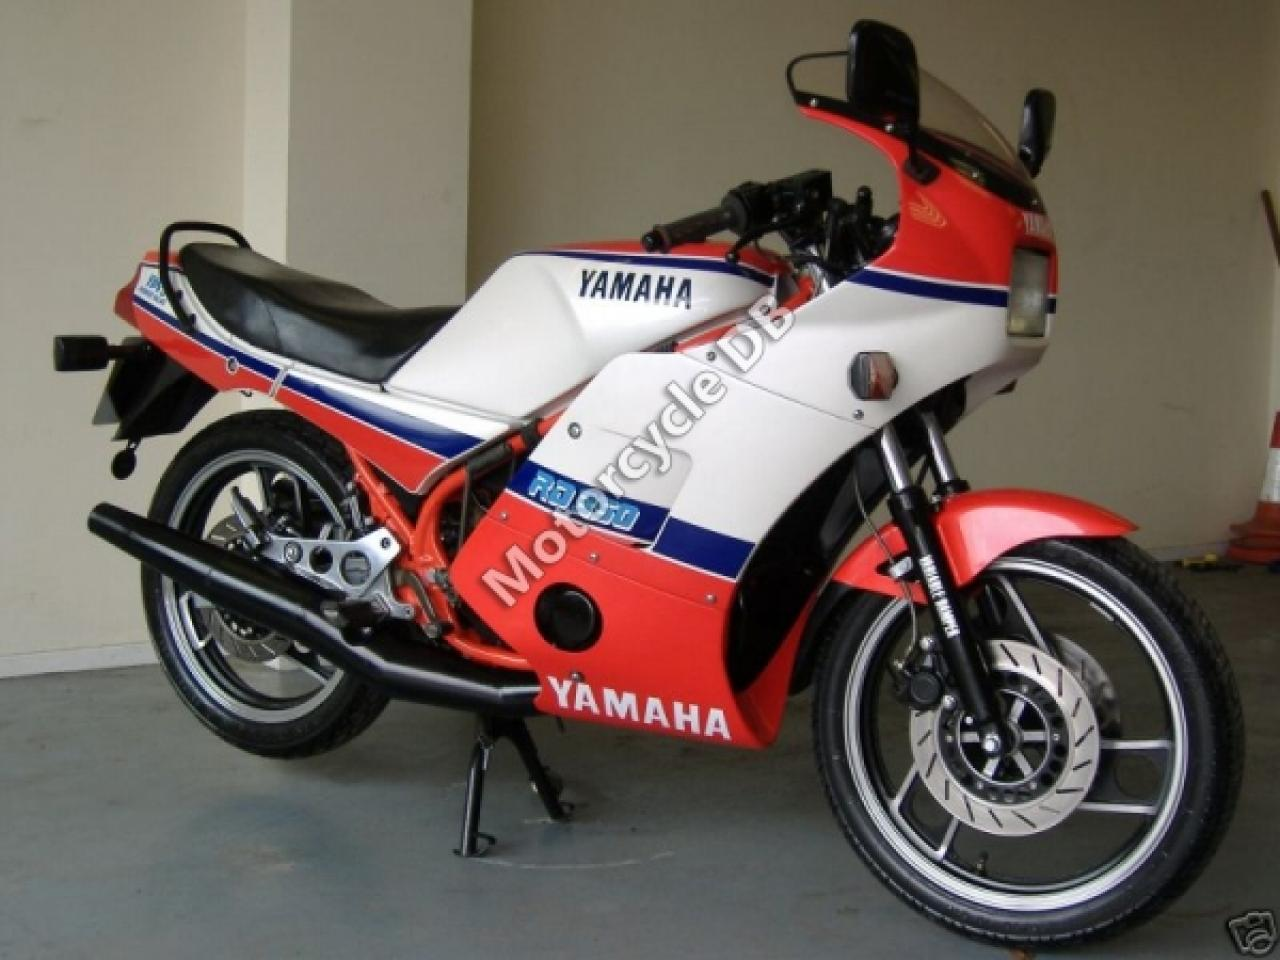 1986 Yamaha RD 350 (reduced effect) #2